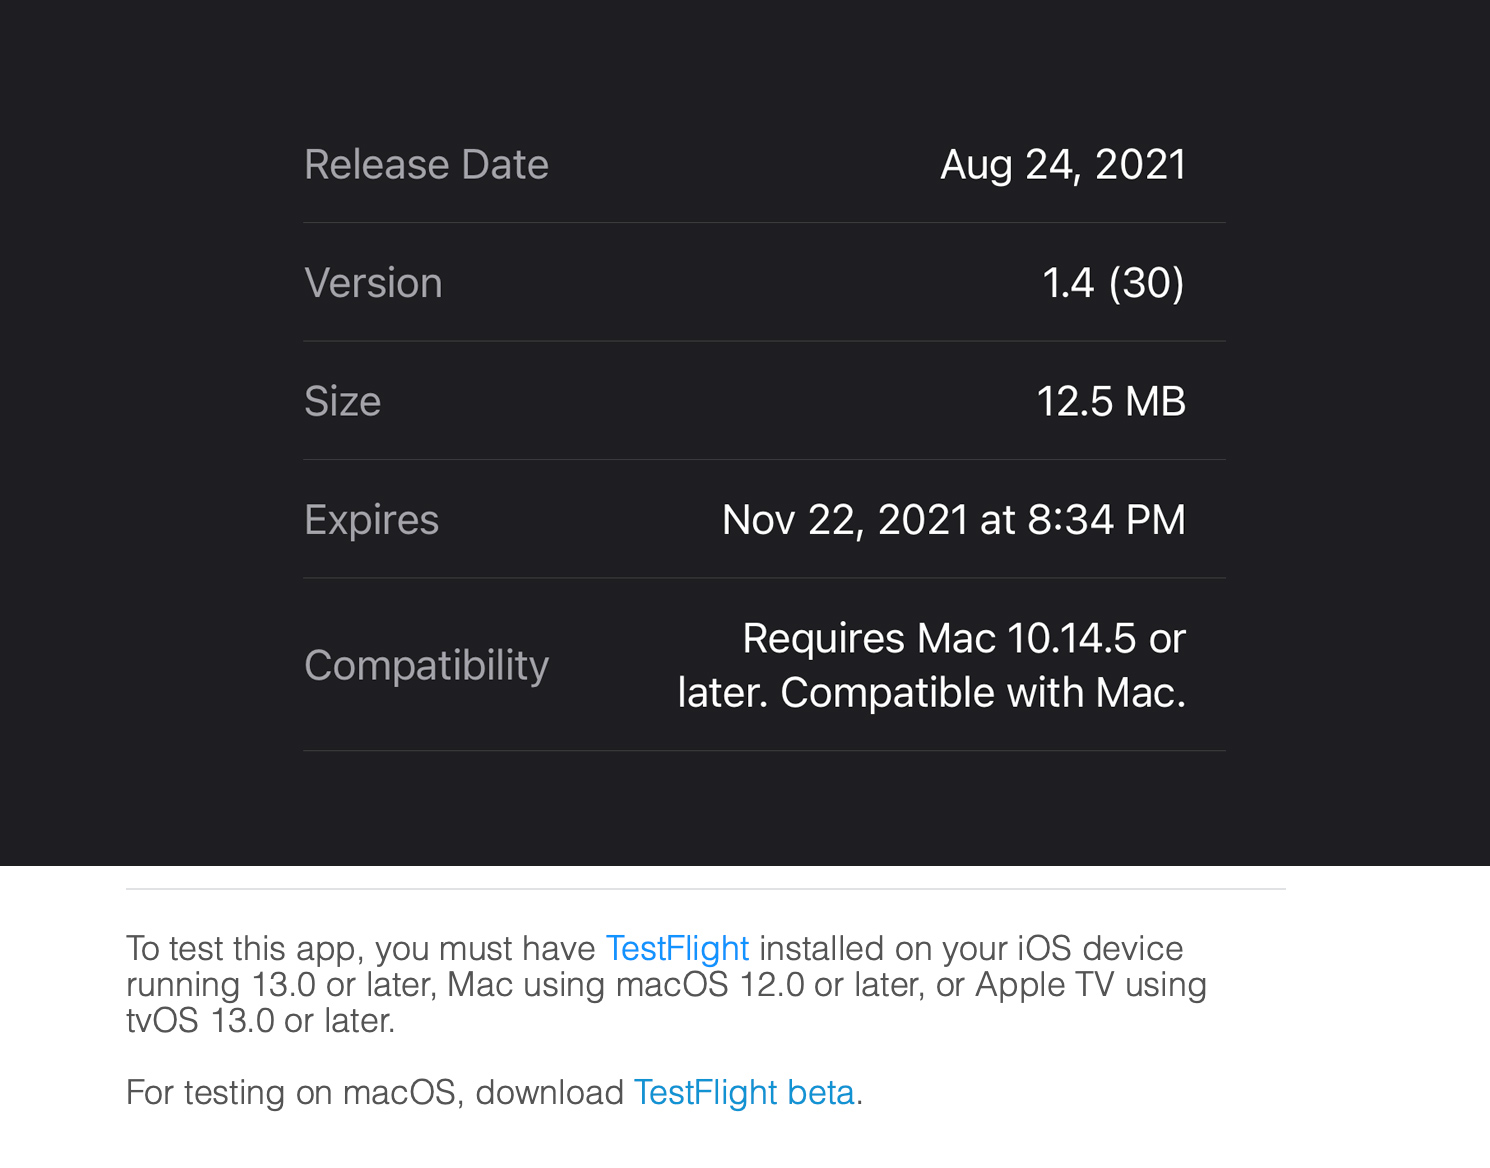 testflight mac Developers can now submit beta apps to TestFlight for macOS [U: Now available]